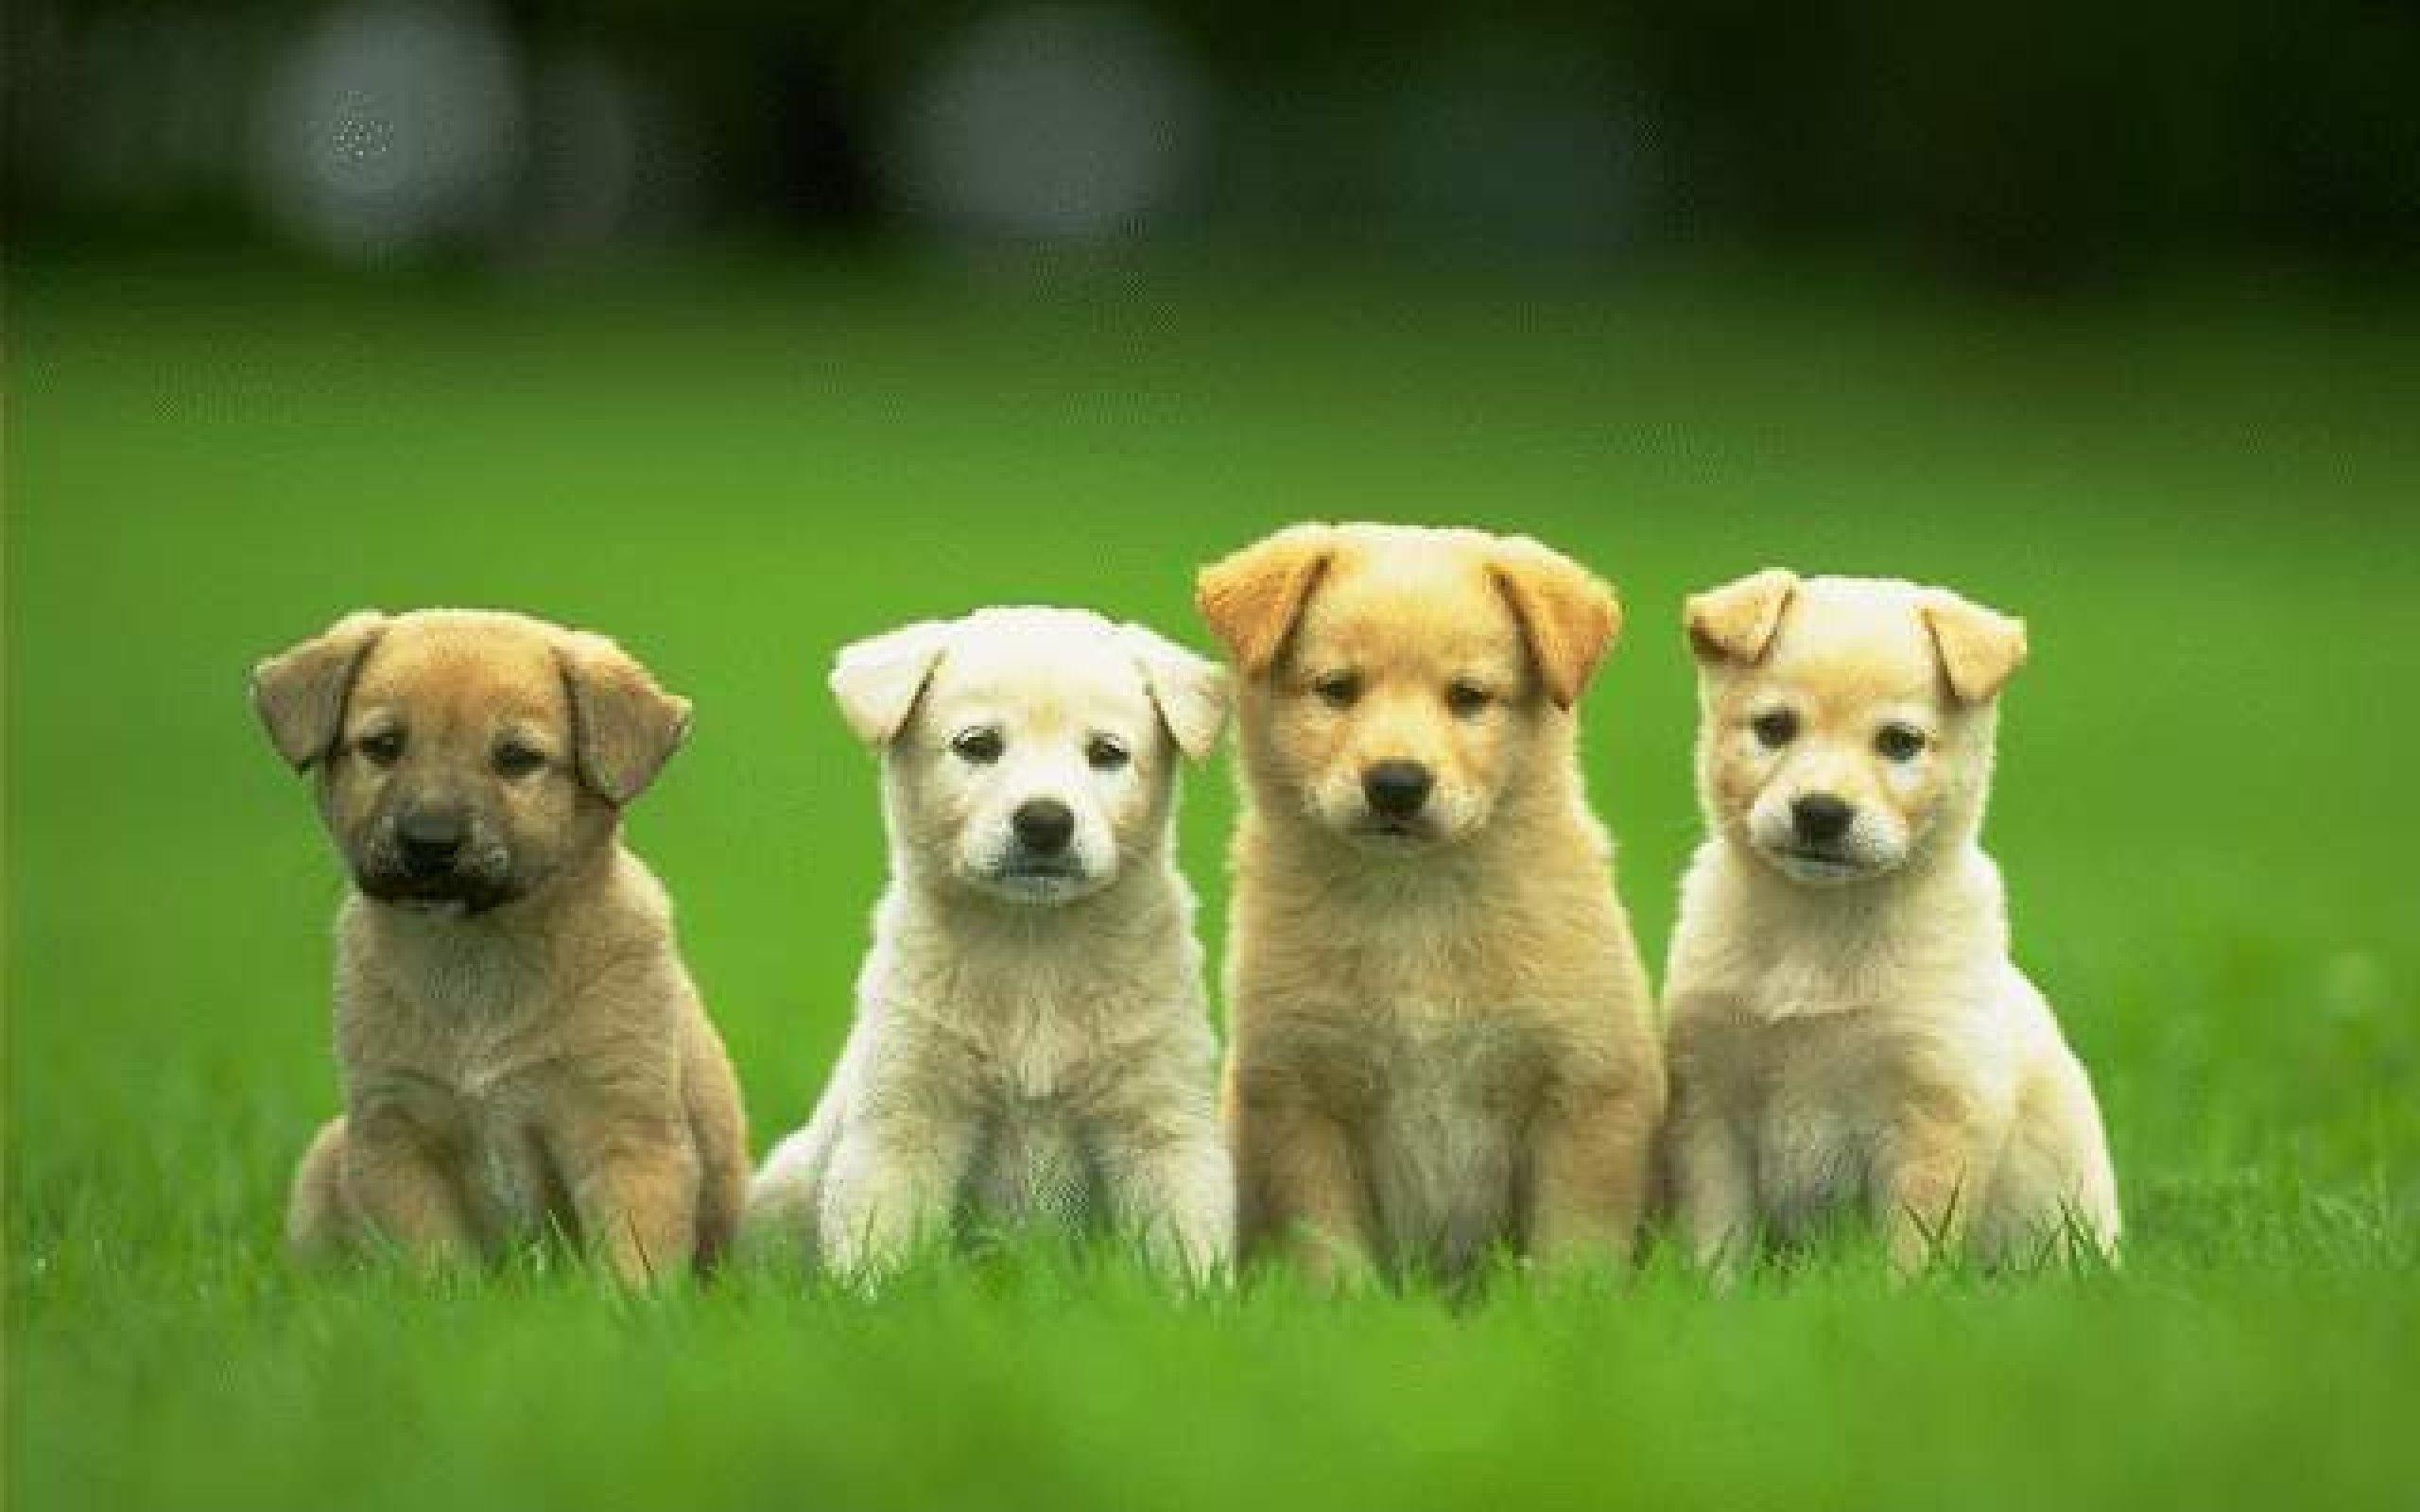 Cute Dog Wallpapers   Top Cute Dog Backgrounds   WallpaperAccess 2560x1600